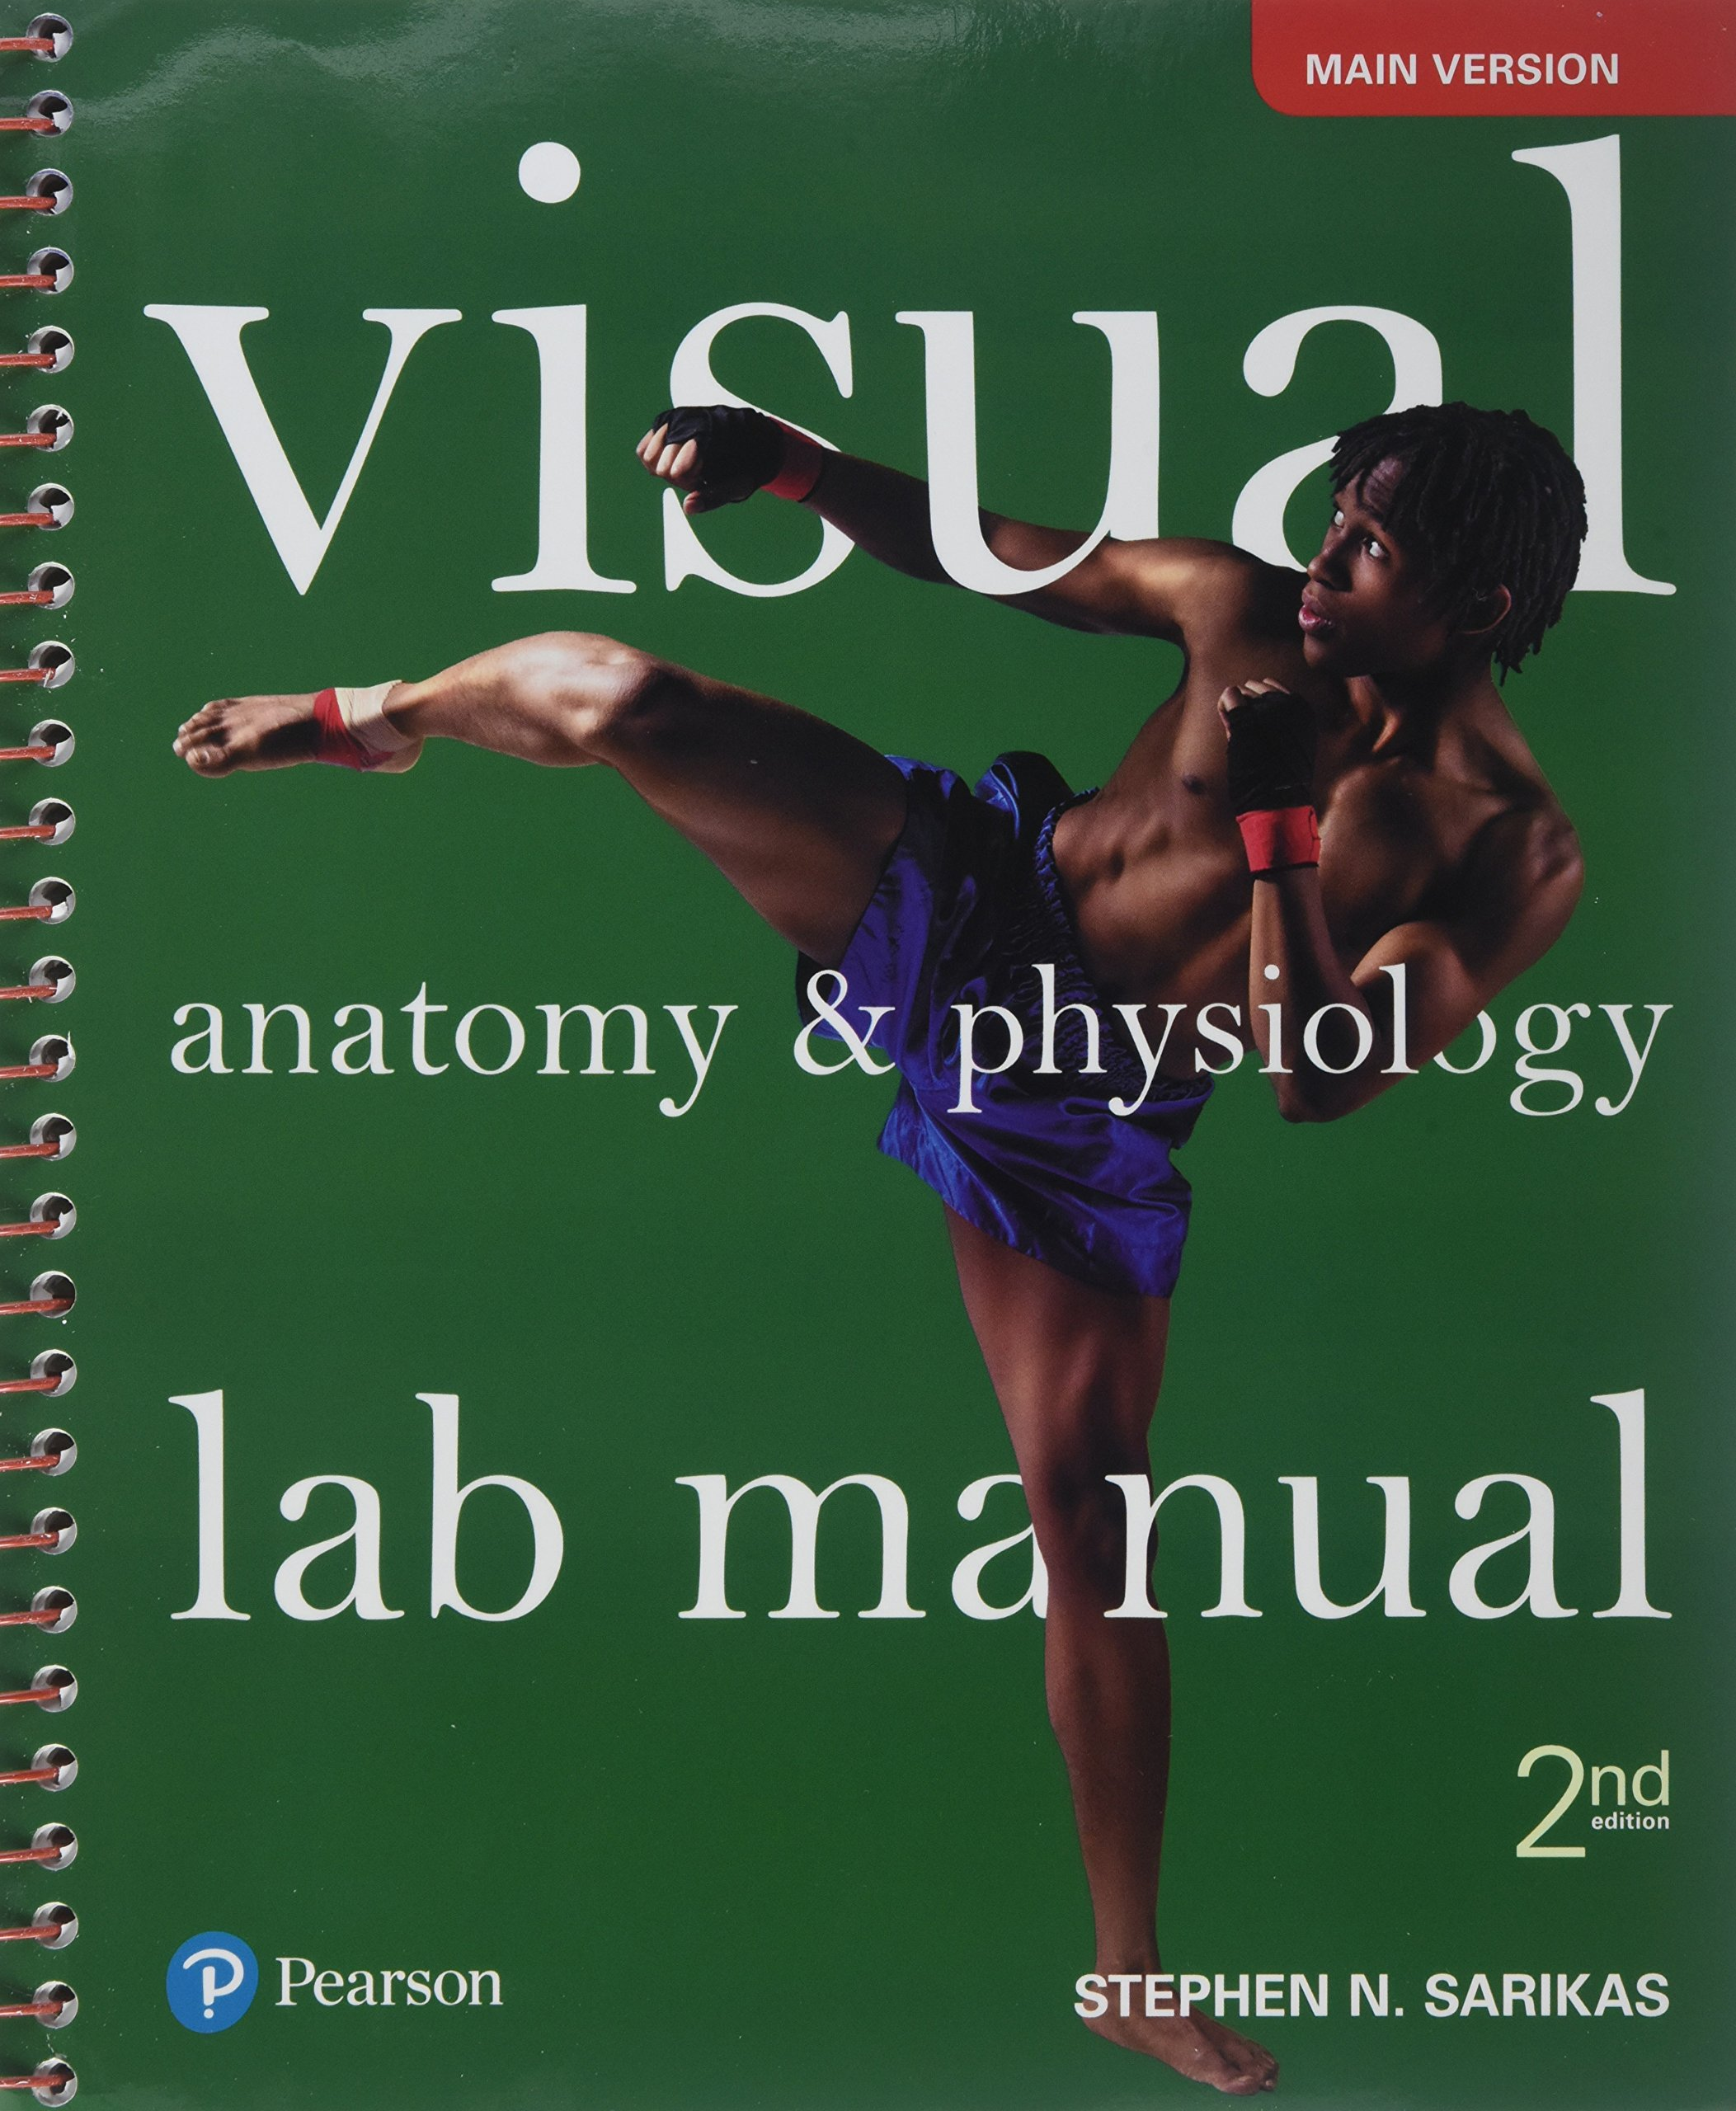 Visual Anatomy & Physiology Lab Manual, Main Version (2nd Edition): Stephen  N. Sarikas: 9780134552200: Physiology: Amazon Canada